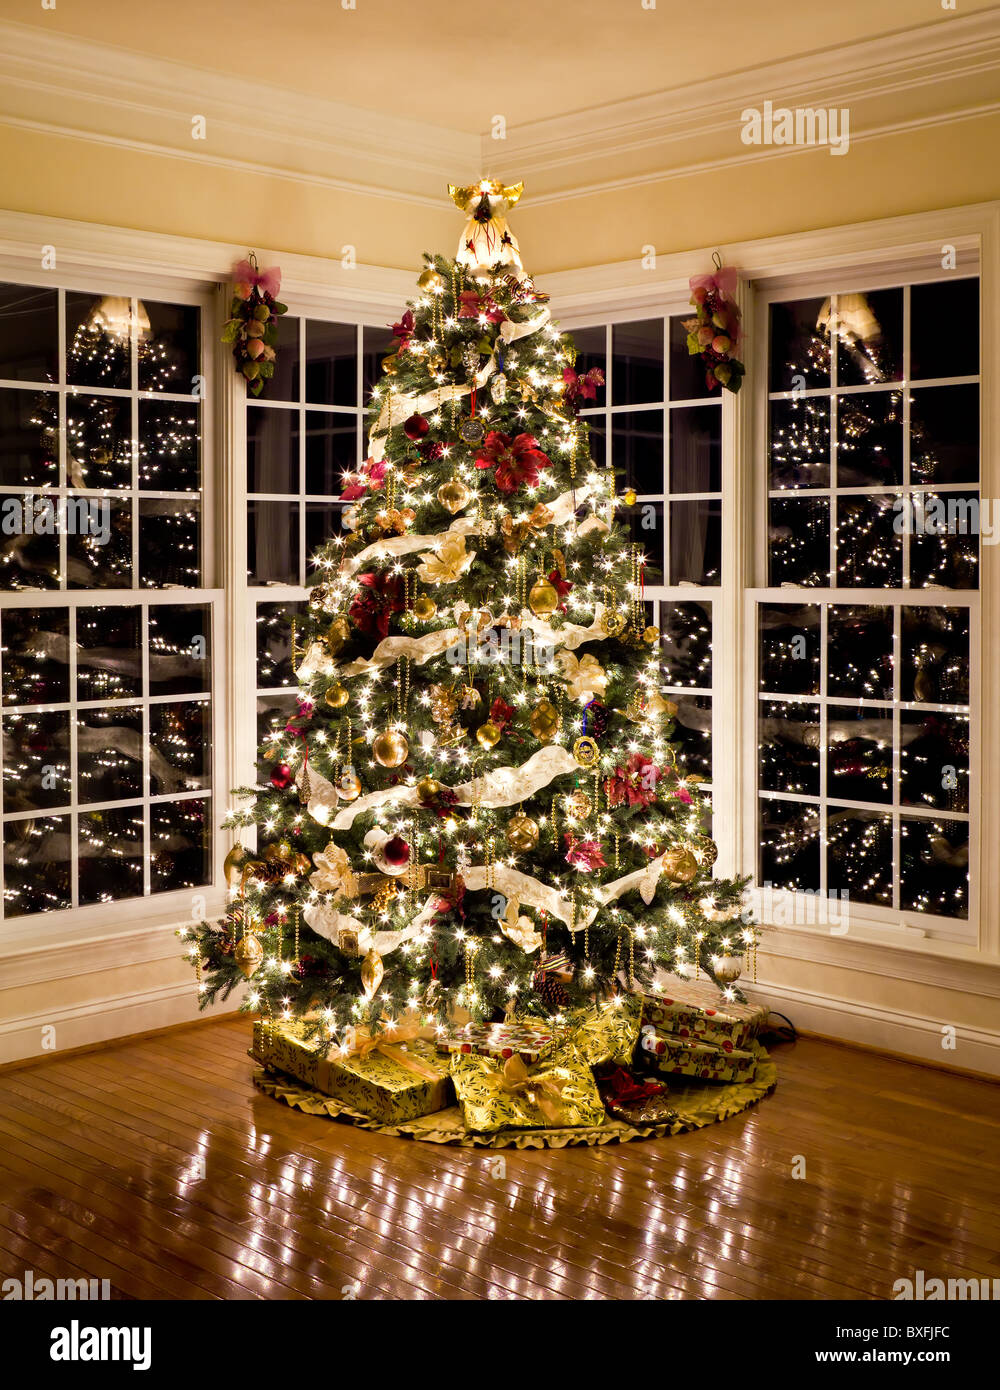 Christmas tree with presents and lights reflecting in windows around the tree in a home living room - Stock Image